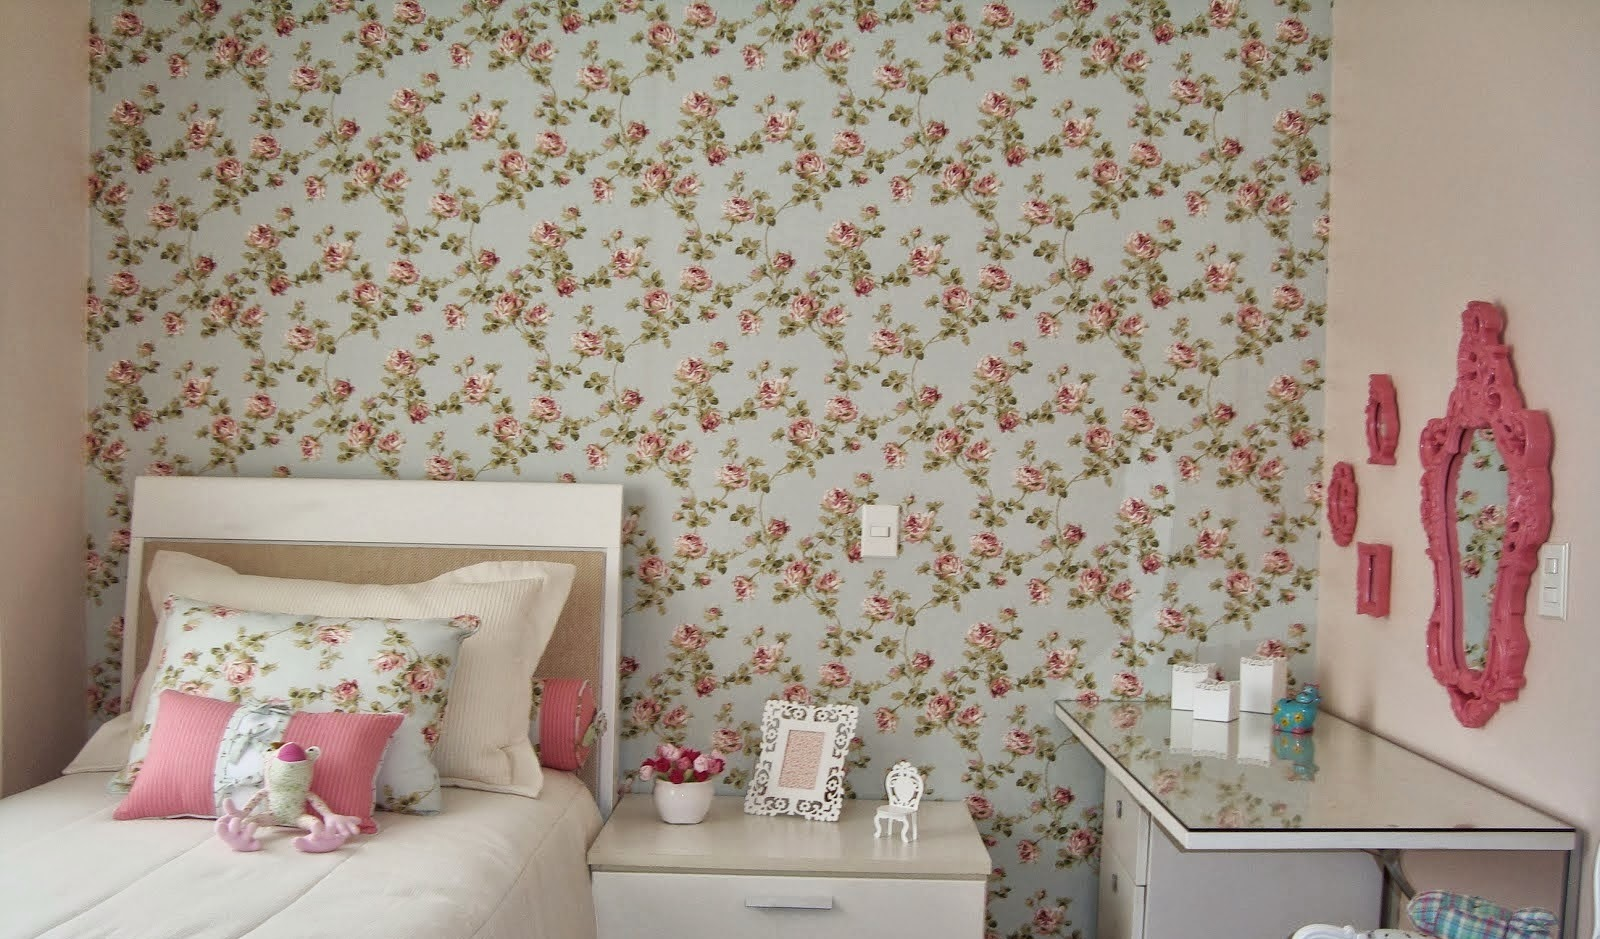 Mil mudan as decora o quarto floral - Papel paredes vintage ...